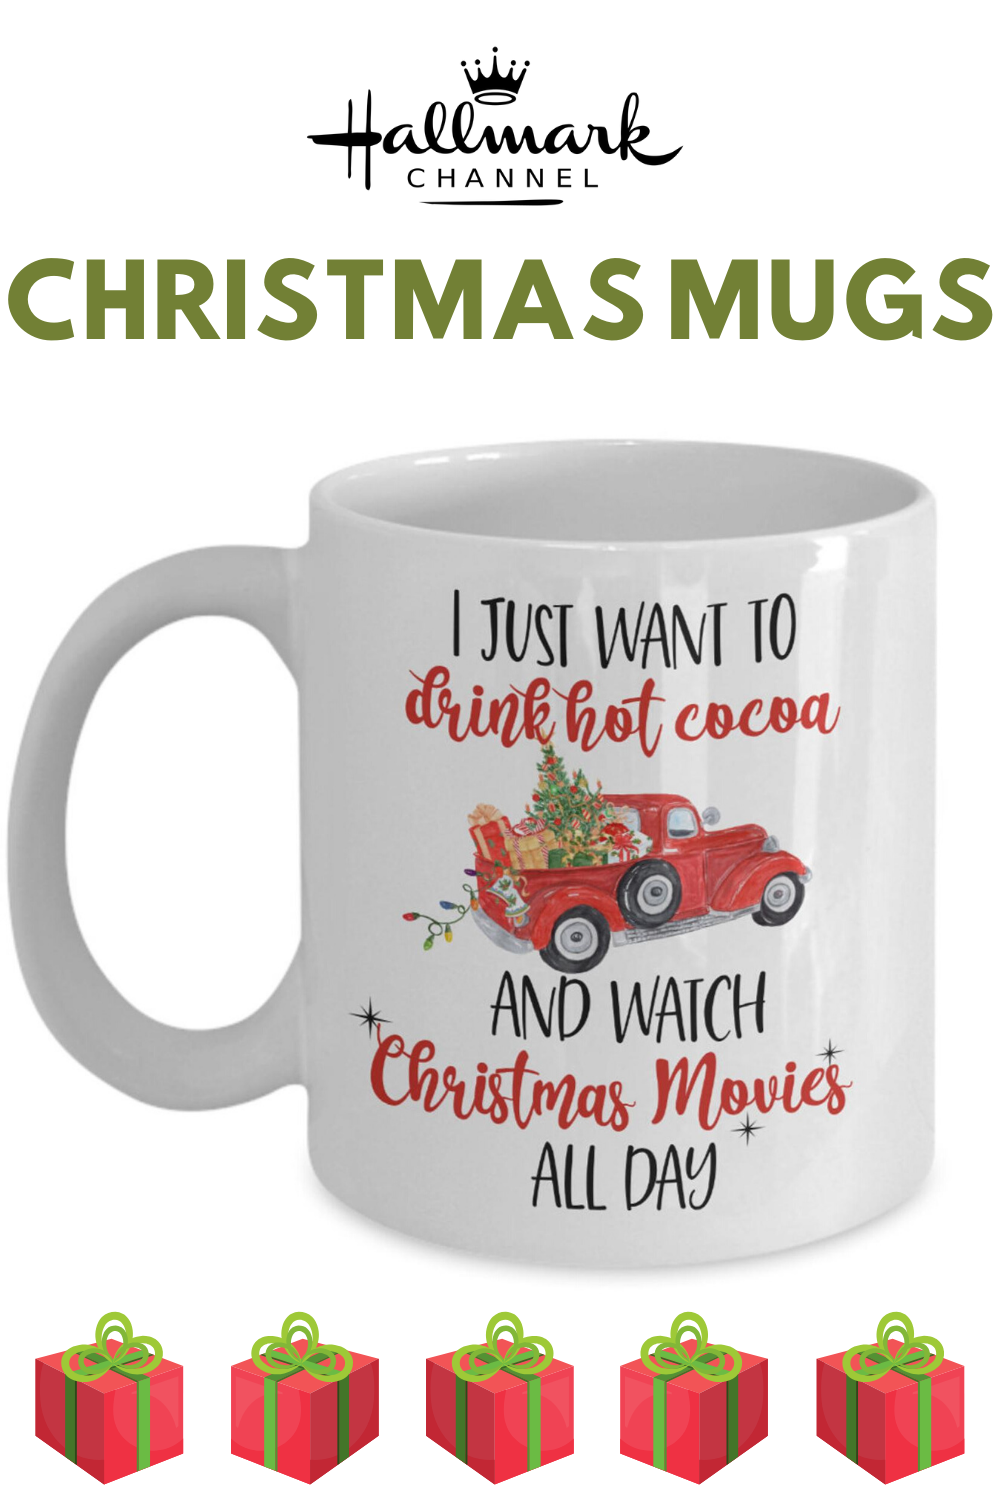 Christmas Mug For Christmas Gift For Men I Just Want To Drink Hot Cocoa Red Truck Christmas Movie Watching Mug Holiday Gift For Women Christmas Mugs Christmas Gifts For Men Cool